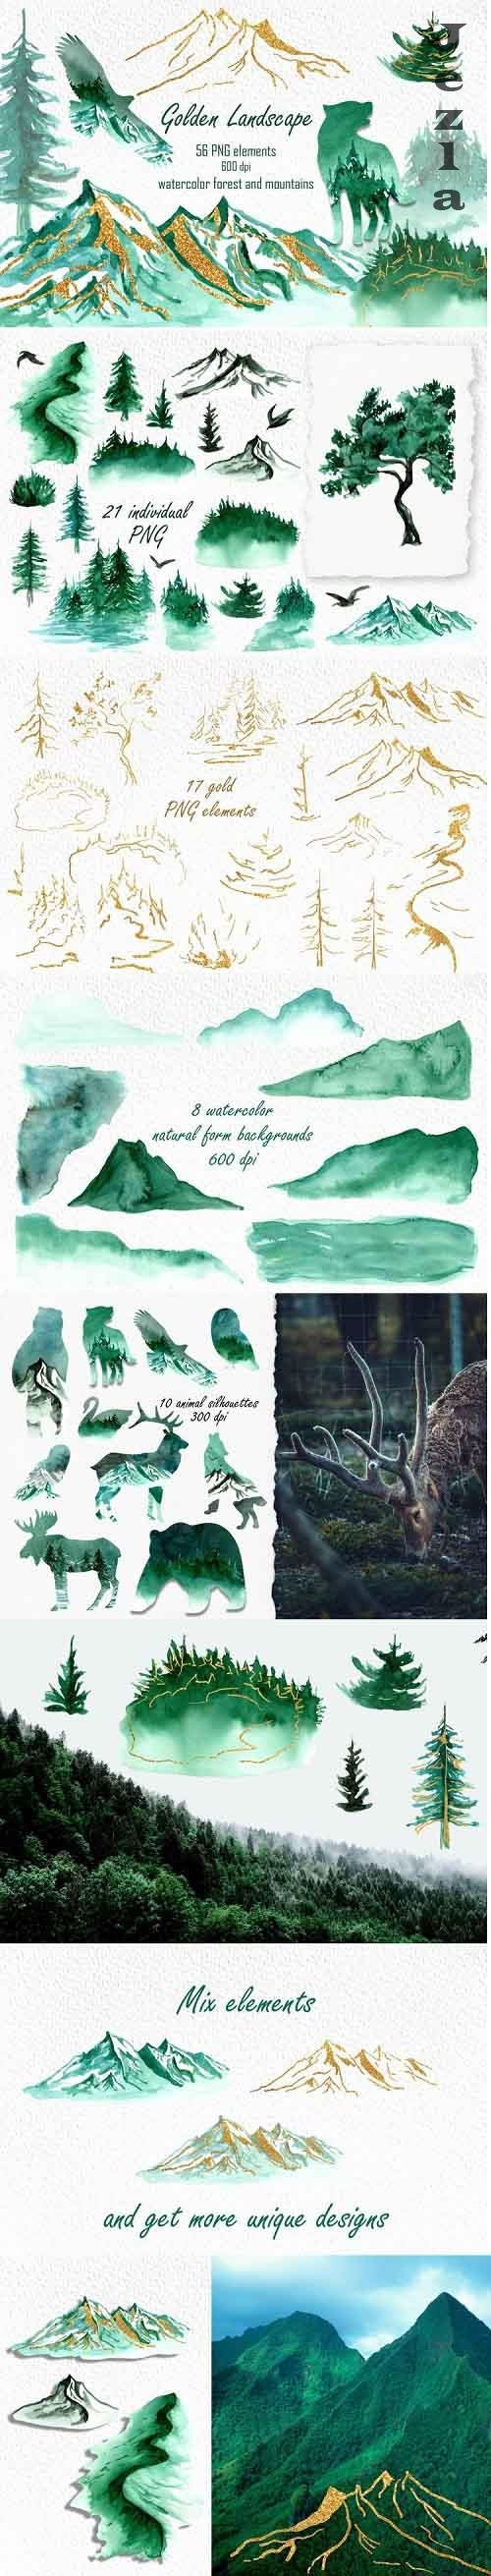 Watercolor landscape clipart, Forest animal silhouettes PNG - 1176802